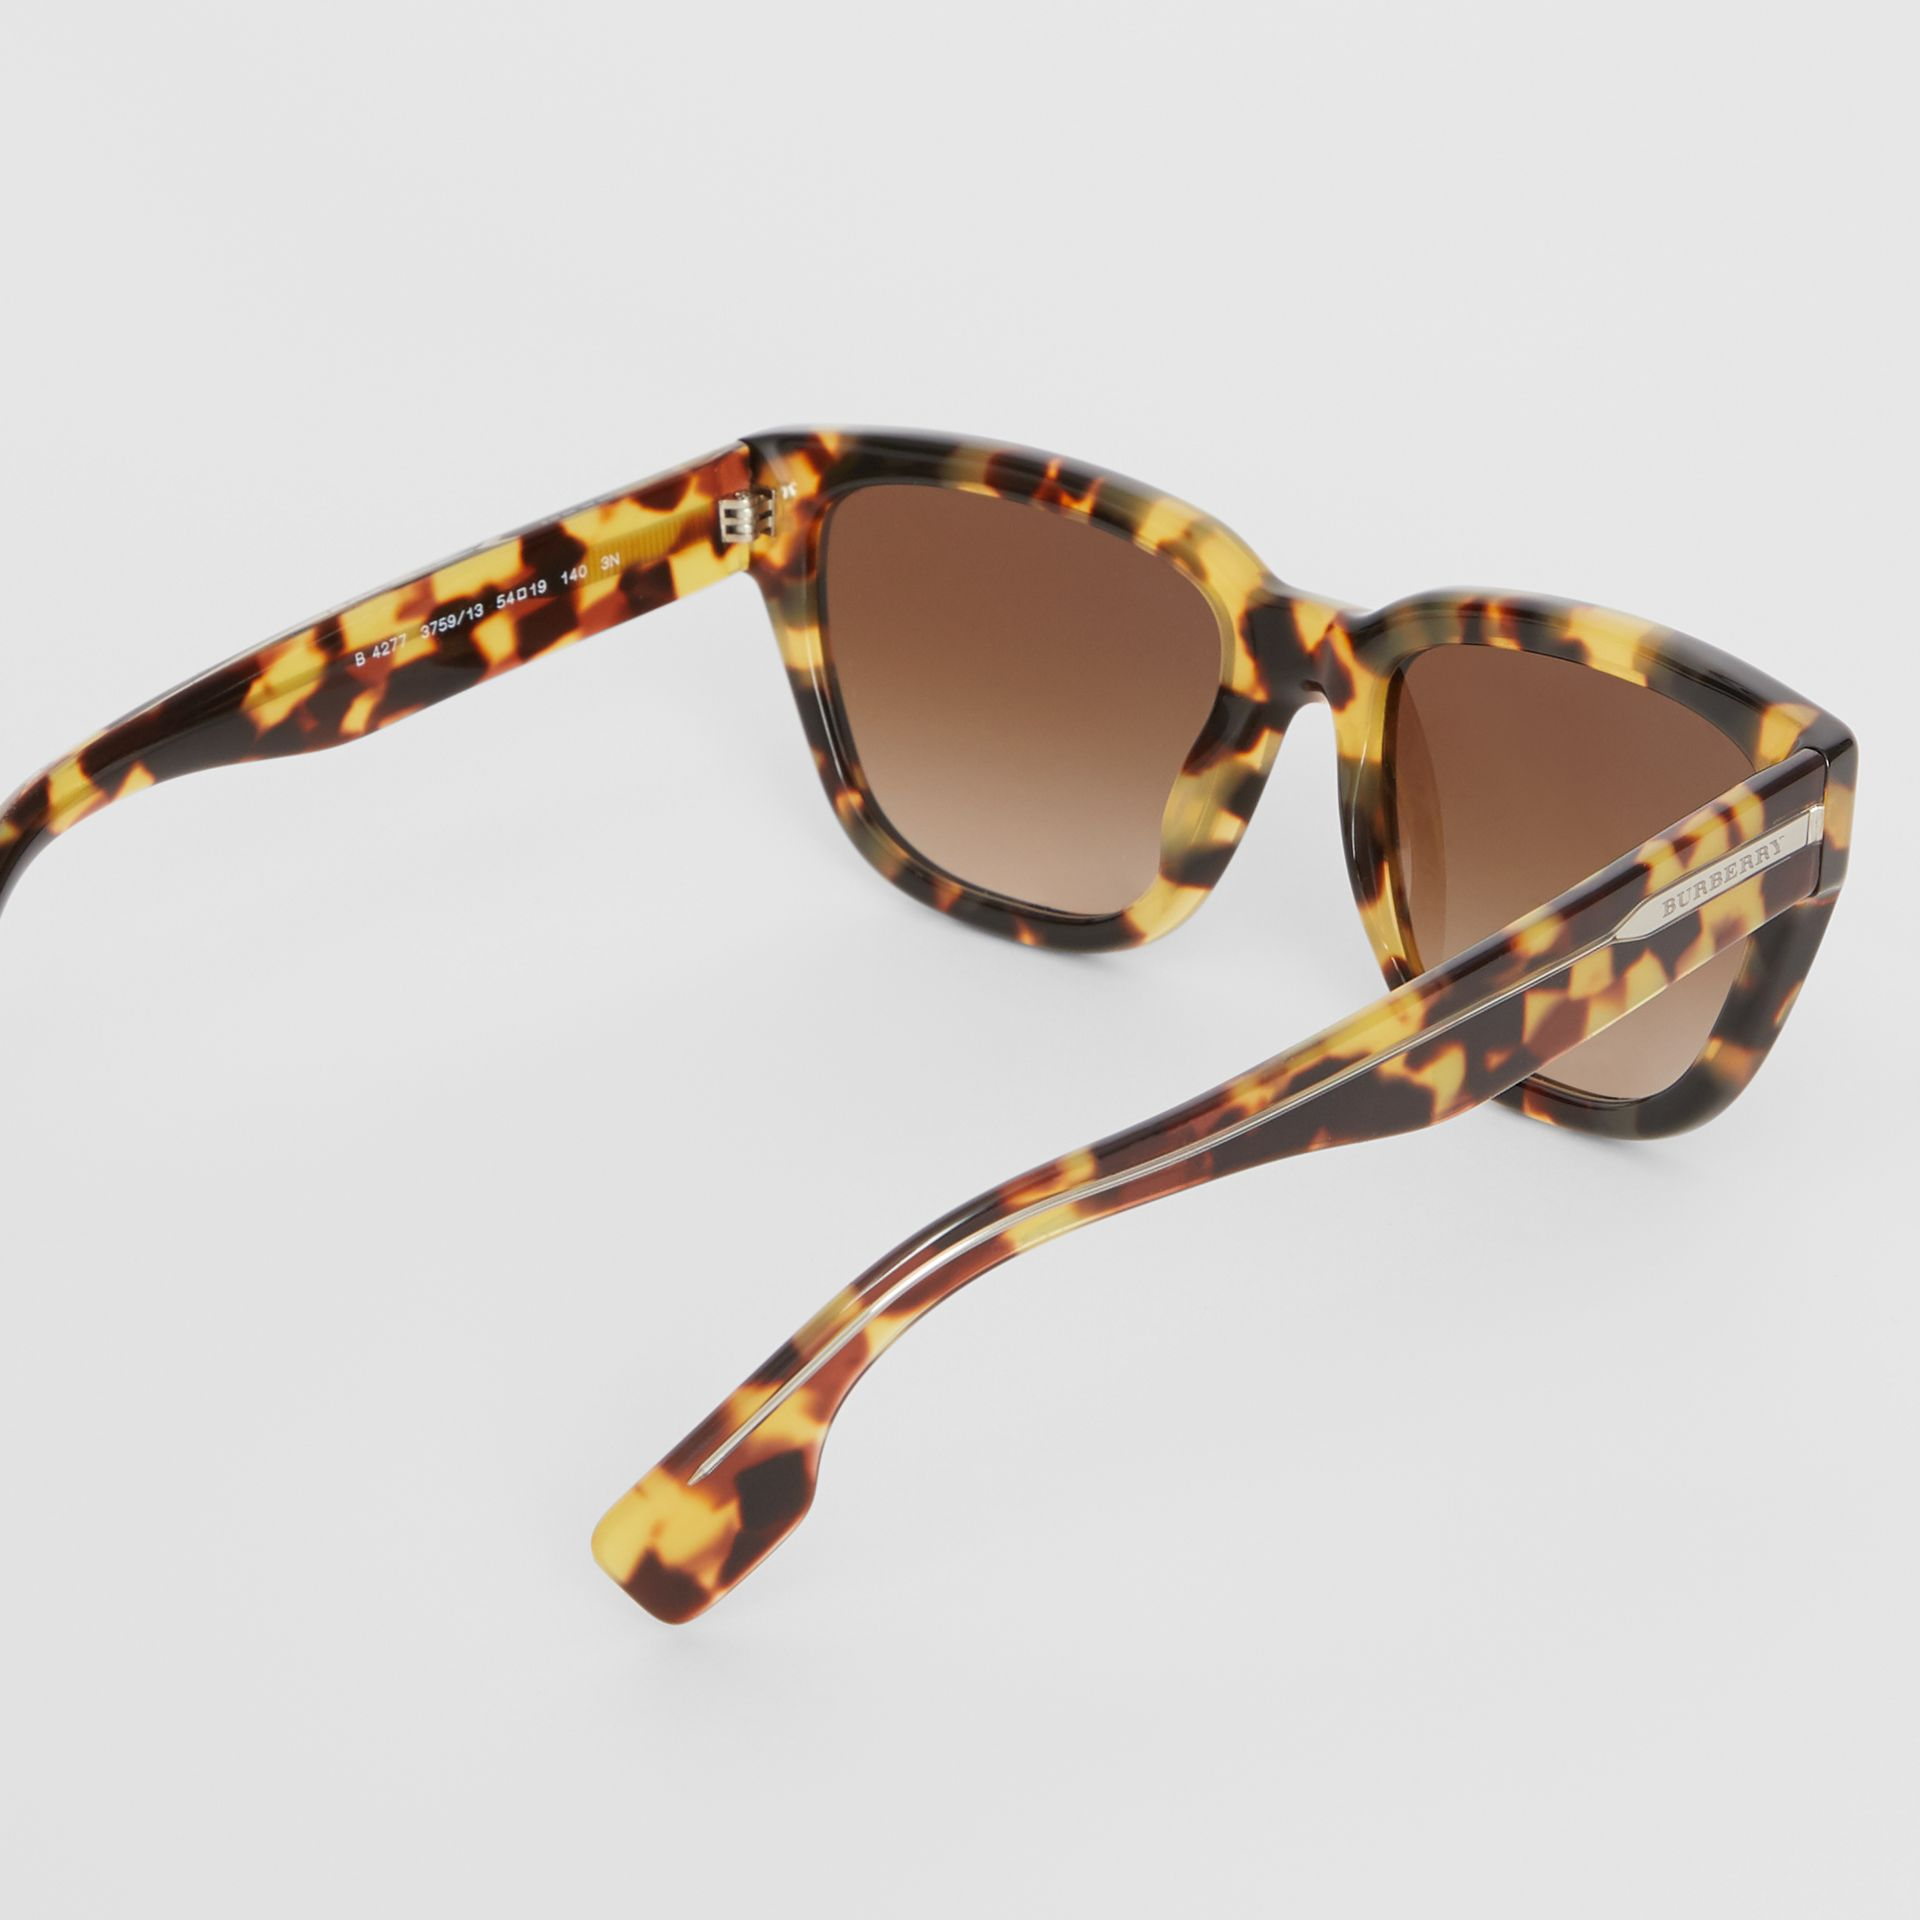 Square Frame Sunglasses in Tortoise Shell - Women | Burberry - gallery image 4